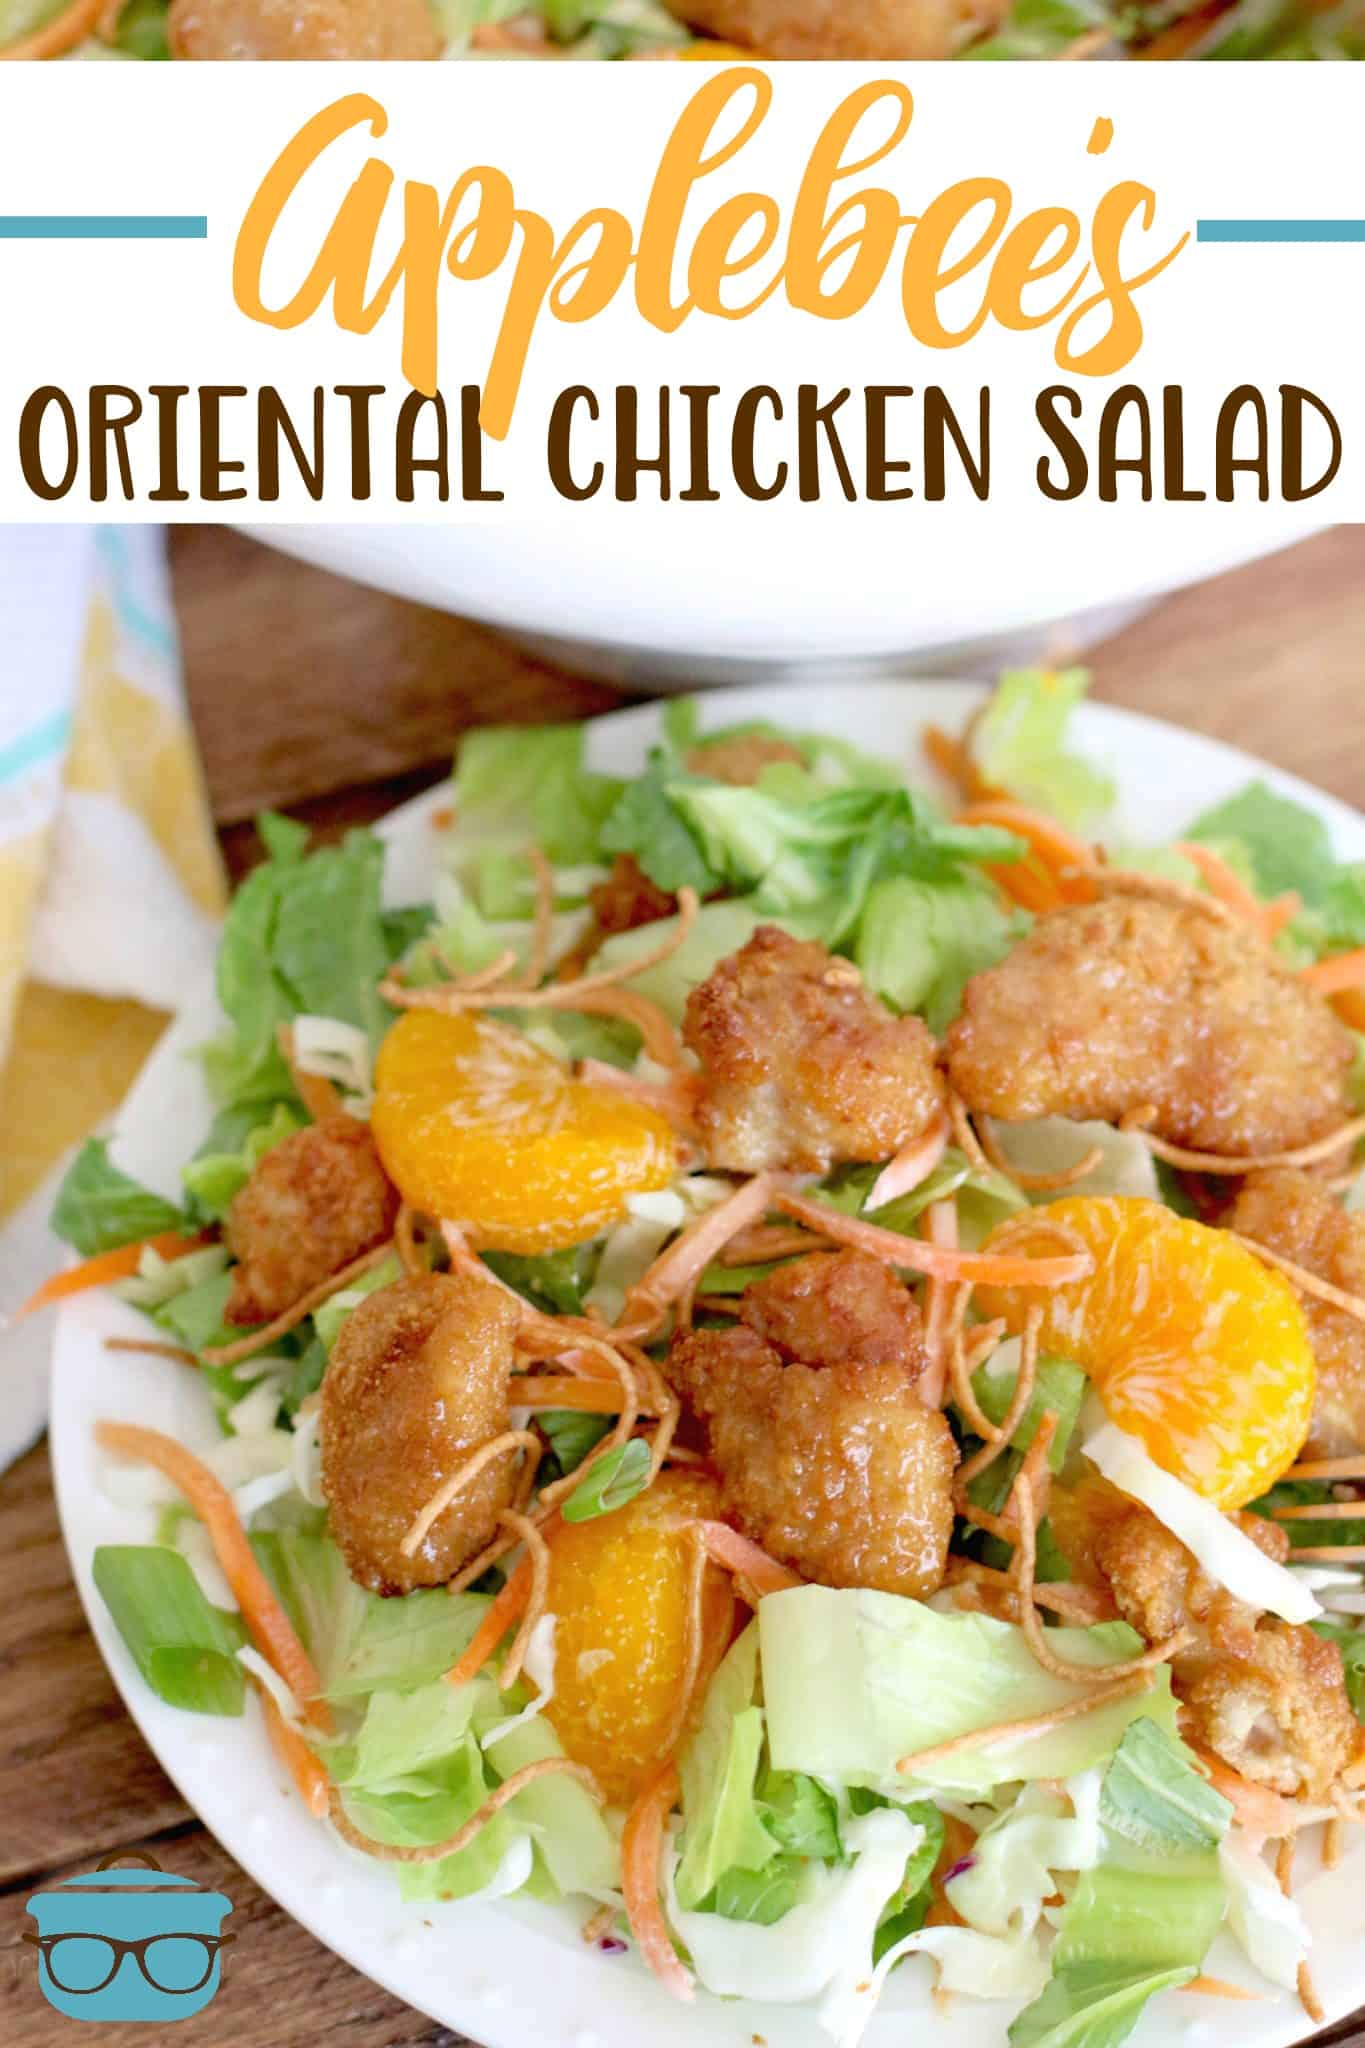 Copycat Applebee's Oriental Chicken Salad is full of chunks of chicken, mandarin oranges and the most scrumptious dressing ever! #orientalchickensalad #sesamedressing